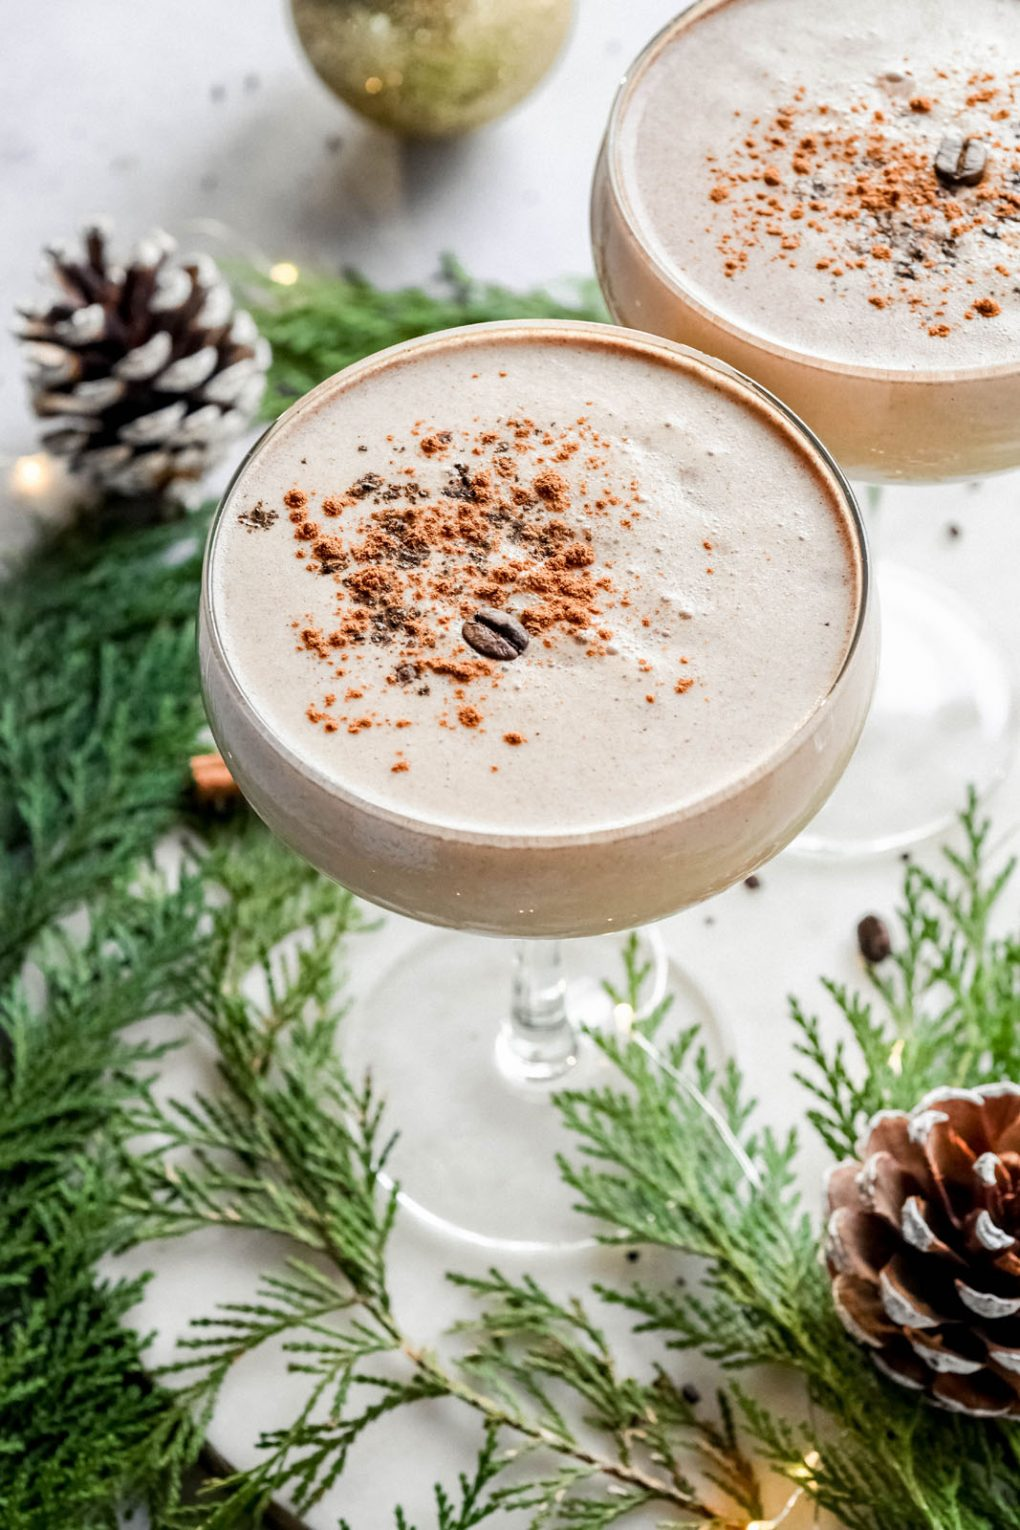 Close up view of a creamy eggnog espresso martini in a coupe glass. Topped with a dash of cinnamon and a coffee bean. On a white background surrounded by cedar, pine cones and tiny little string lights.